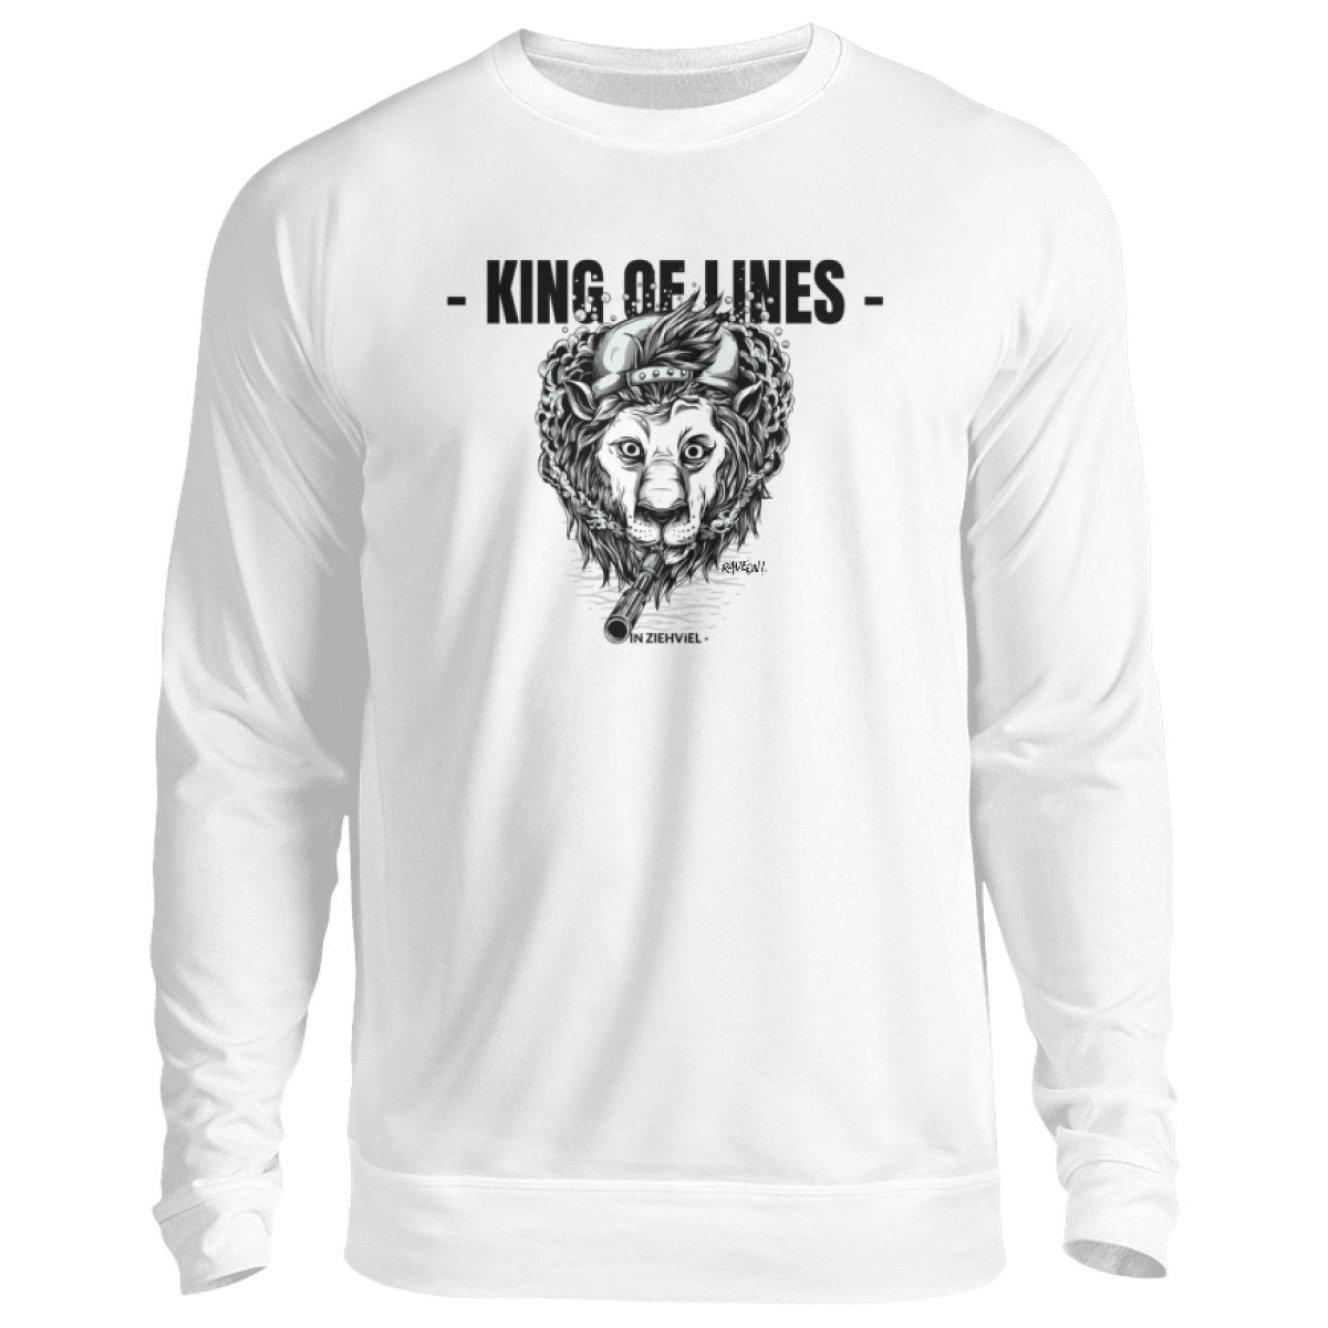 KING OF LINES - Rave On!® - Unisex Pullover Unisex Sweatshirt Arctic White / S - Rave On!® der Club & Techno Szene Shop für Coole Junge Mode Streetwear Style & Fashion Outfits + Sexy Festival 420 Stuff